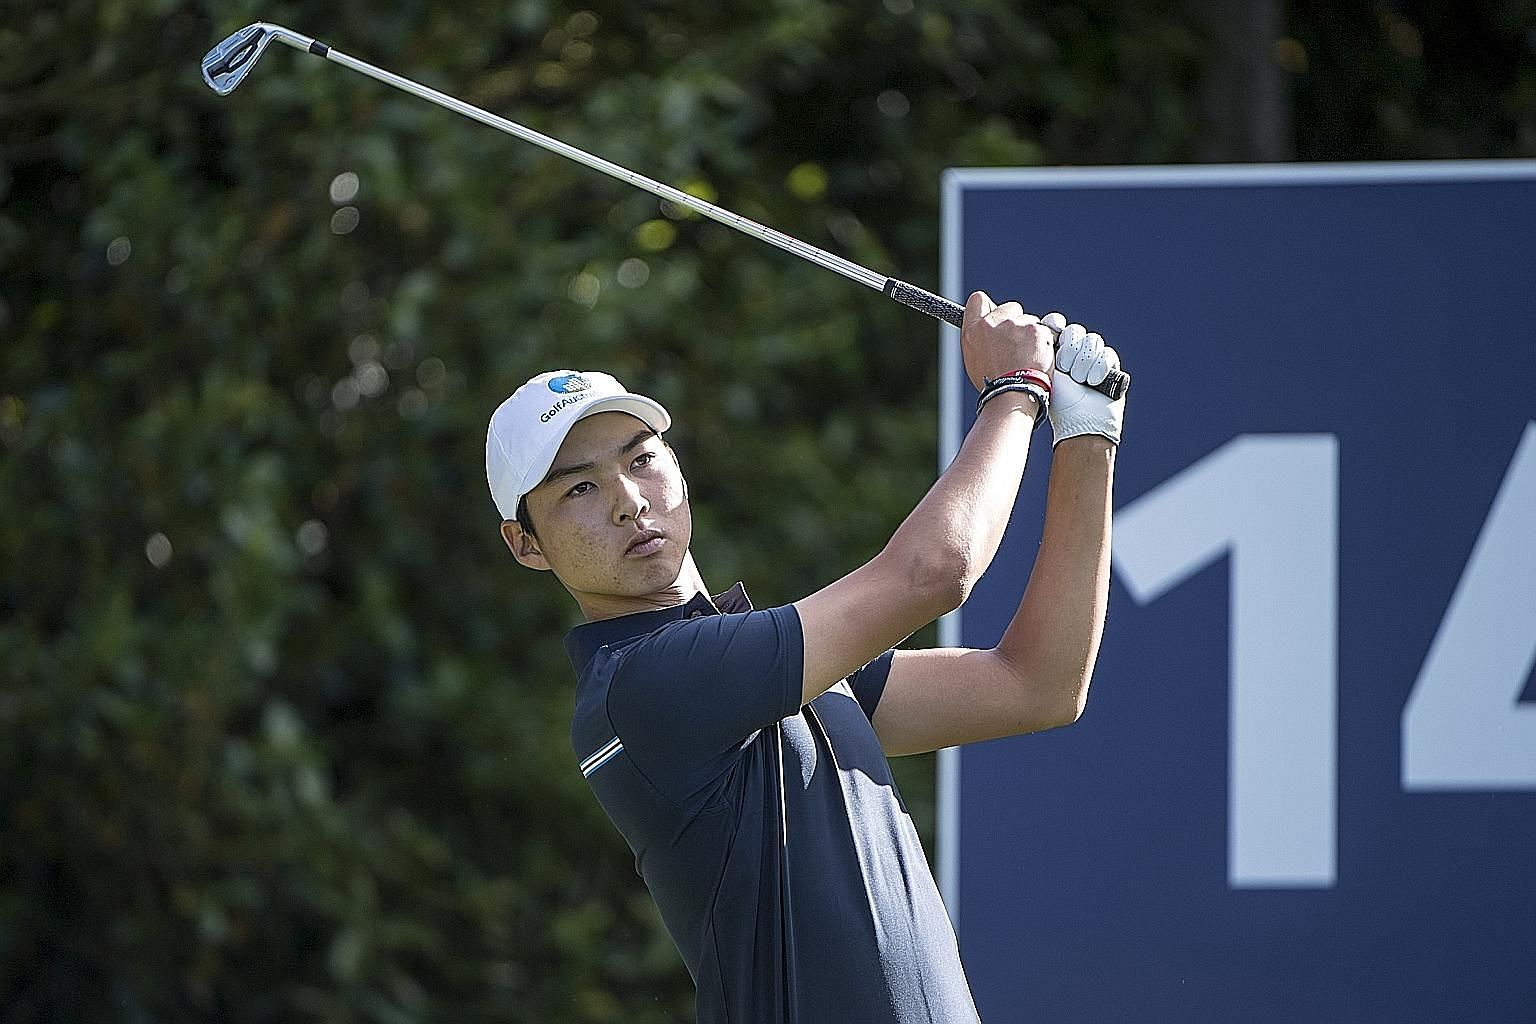 Australia's Lee Min-woo, the younger brother of LPGA star Min-jee, is hoping to win this year's Asia-Pacific Amateur Championship to earn a spot at the Masters and The Open next year.